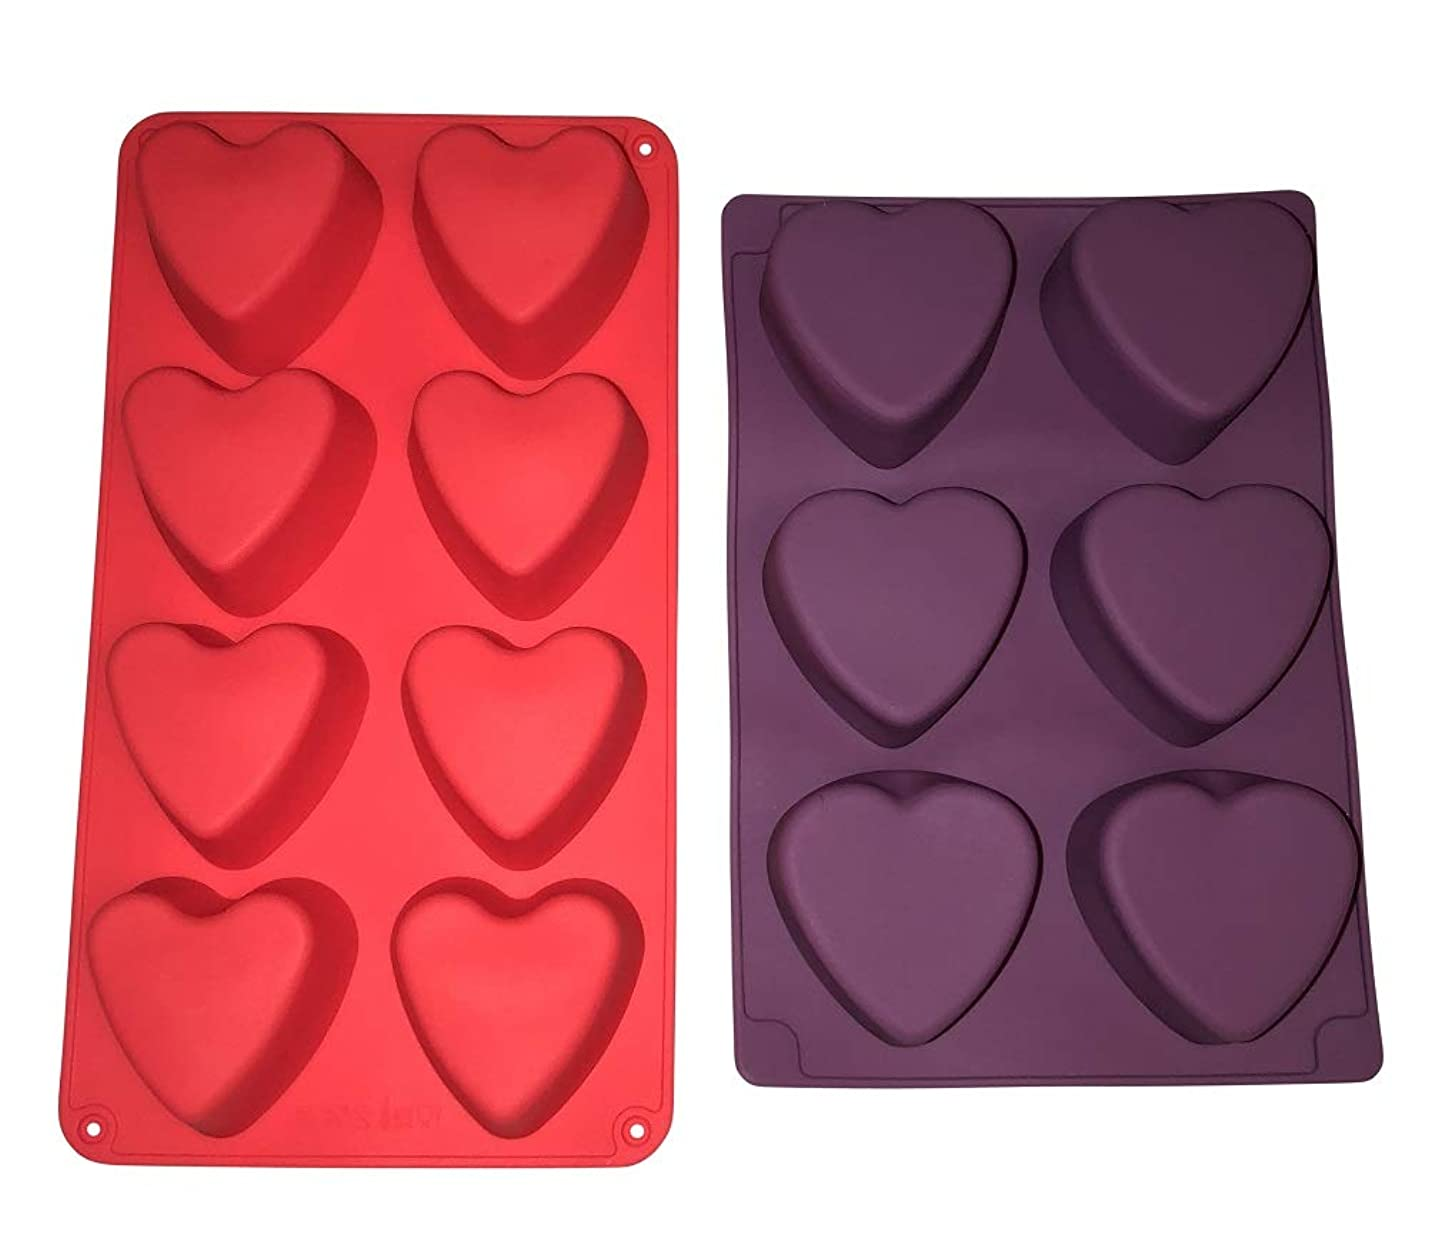 2 Silicone Heart Soap Molds –Valentines Day Holiday Hearts Shaped – Homemade Soaps Cake Bath Bombs – DIY Baked Party Gifts Supplies - Random Colors Baking Bundle by Jolly Jon